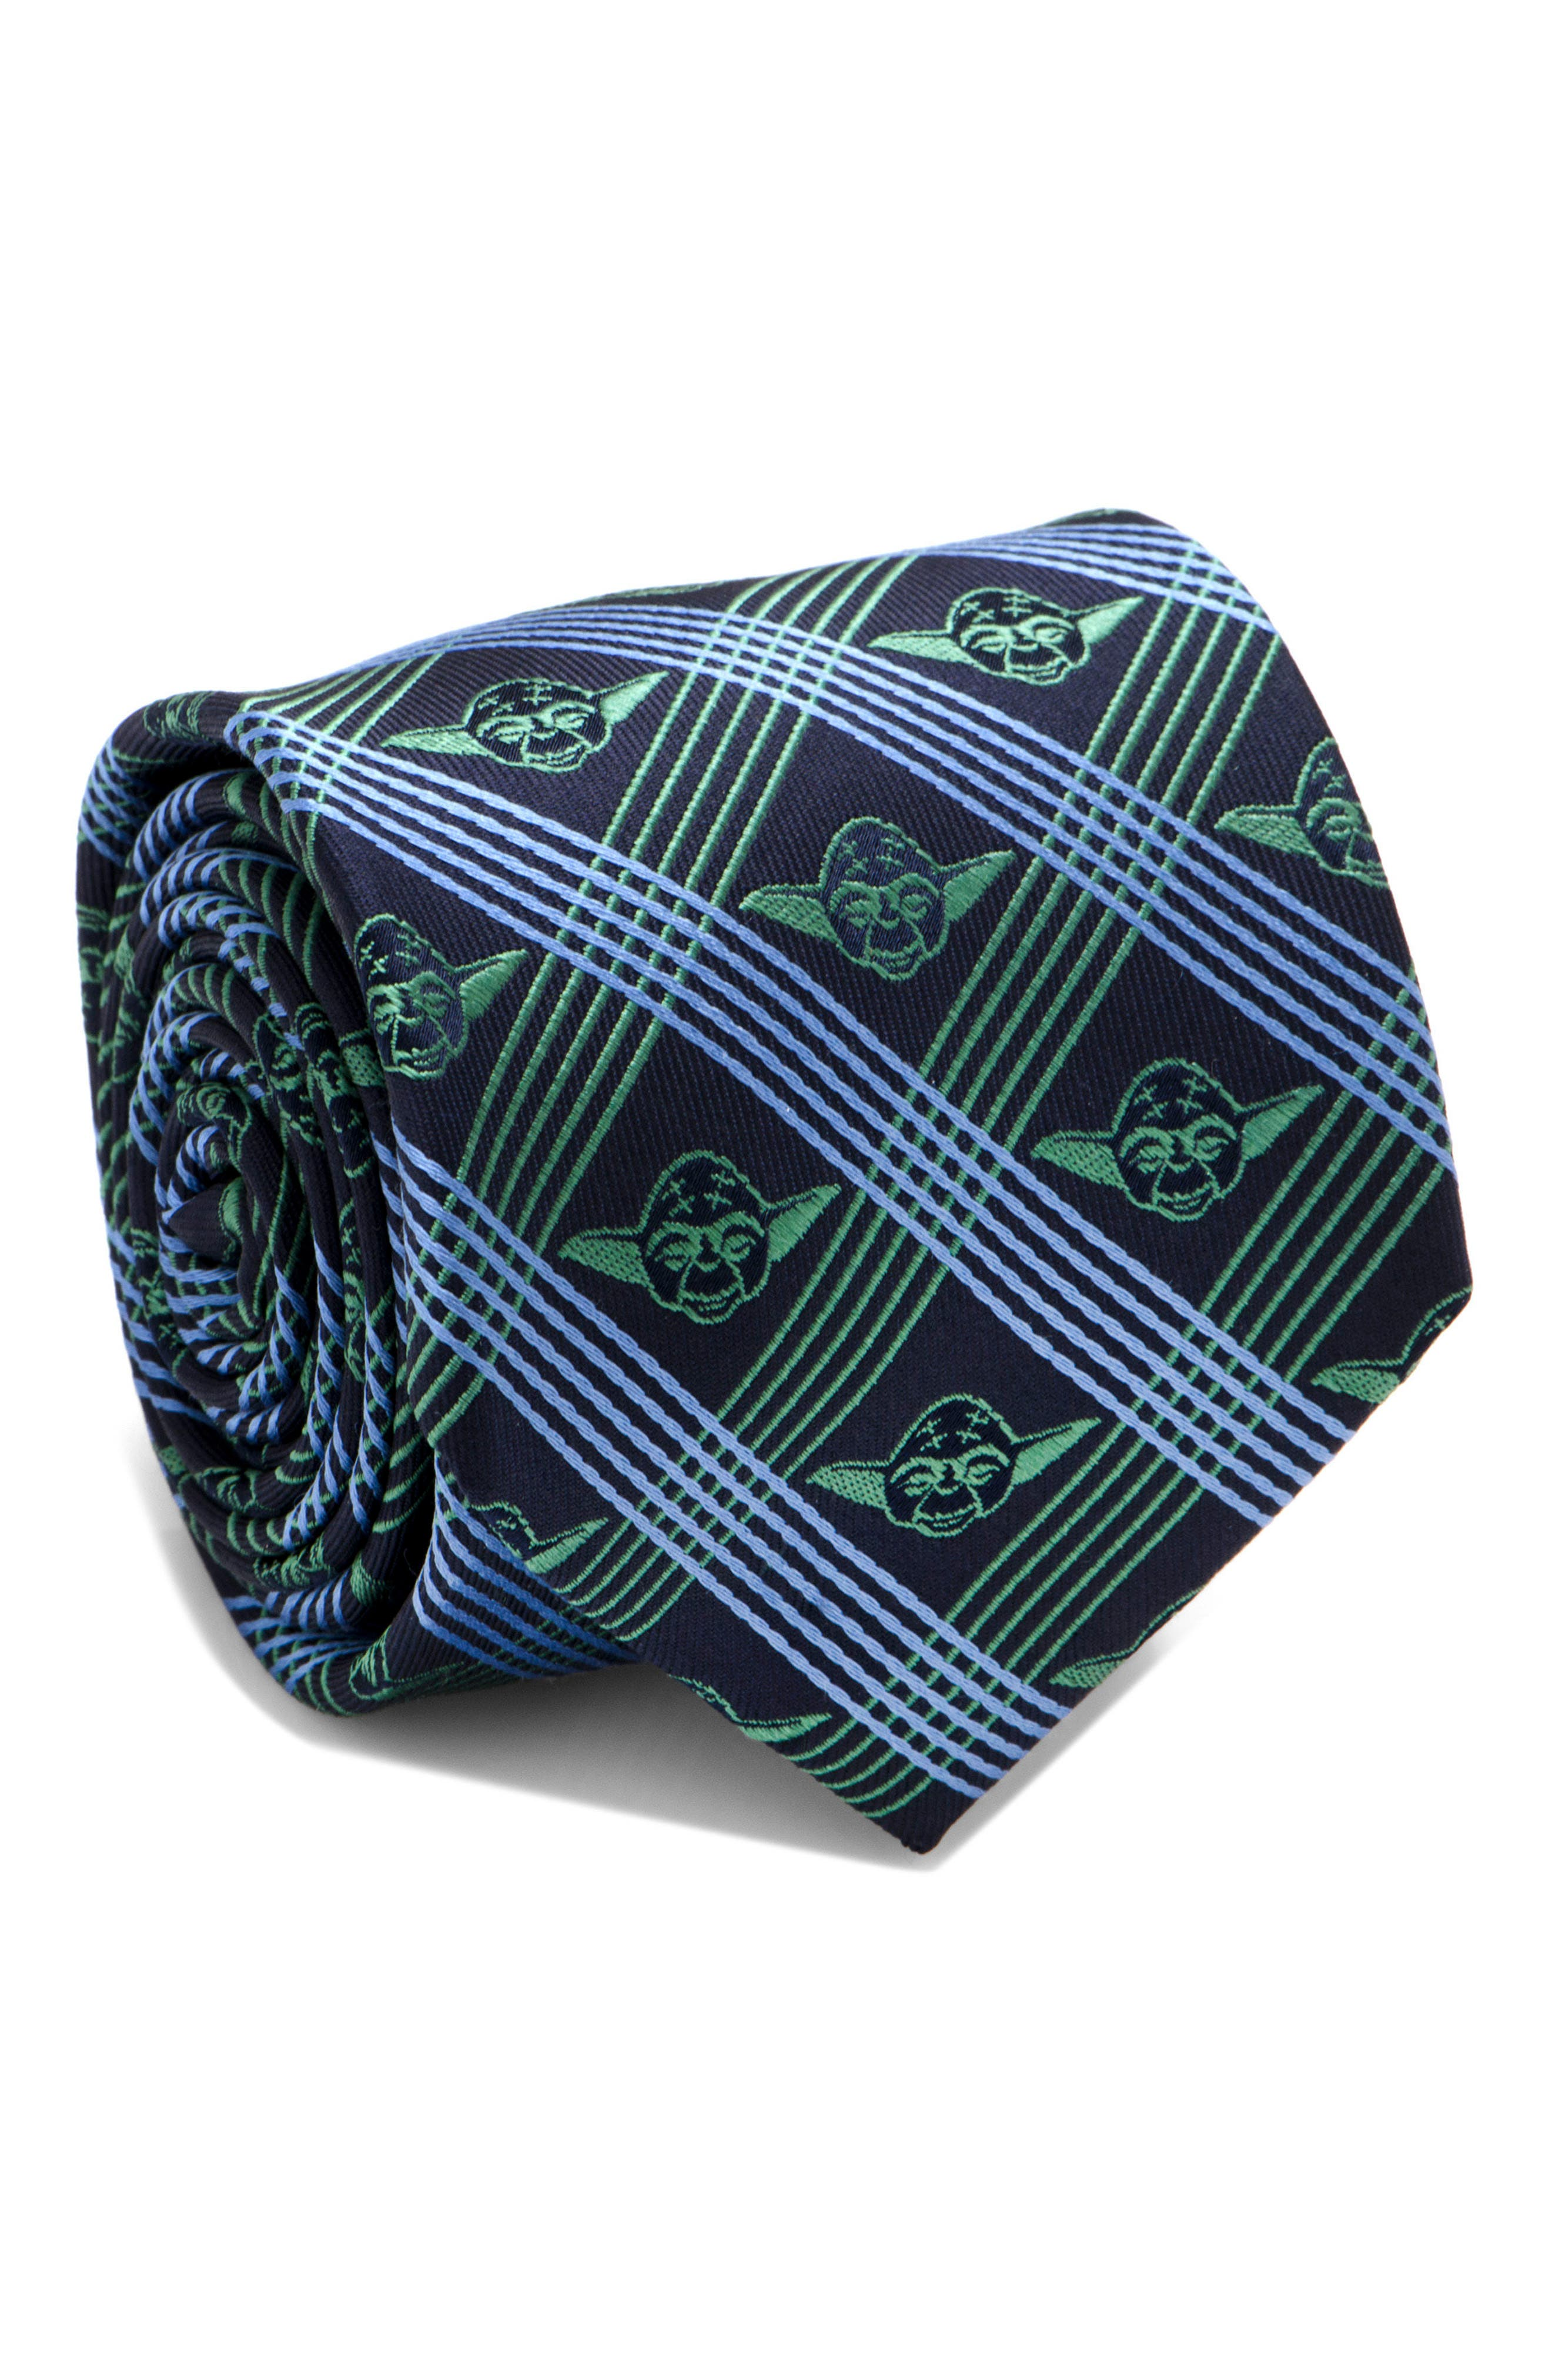 Yoda Grid Silk Tie,                         Main,                         color, Navy